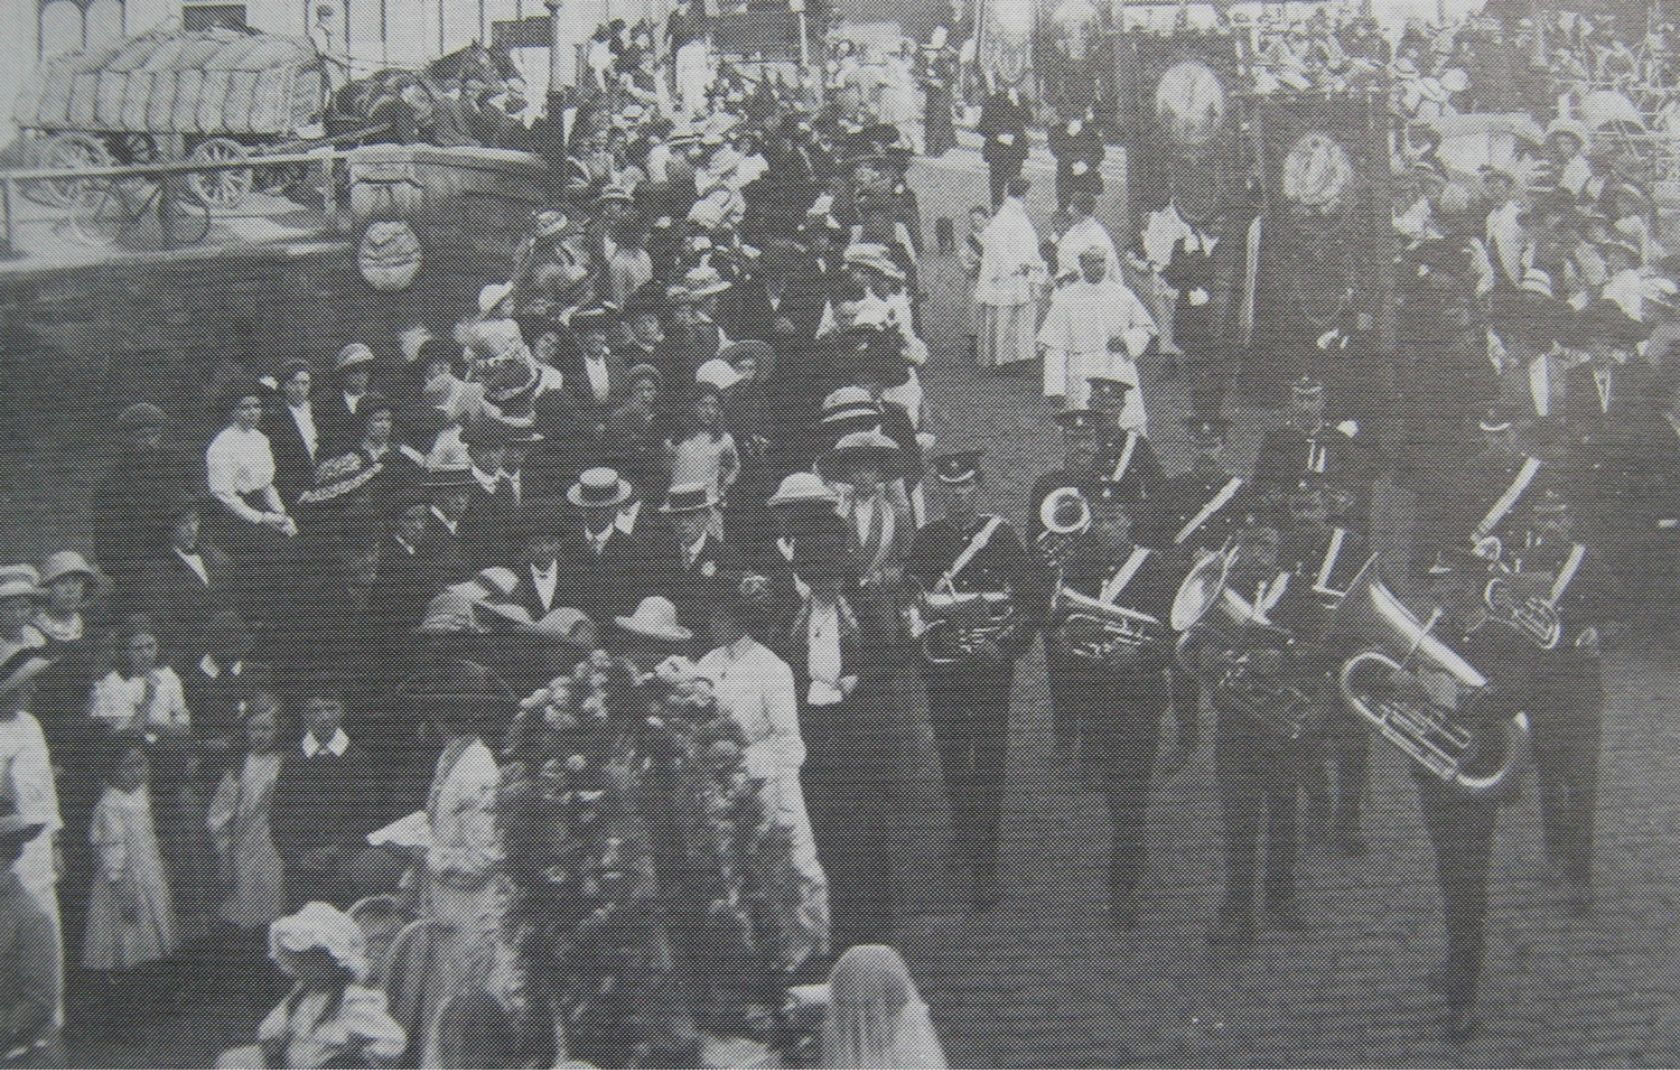 Catholic Procession, Spalding 1913